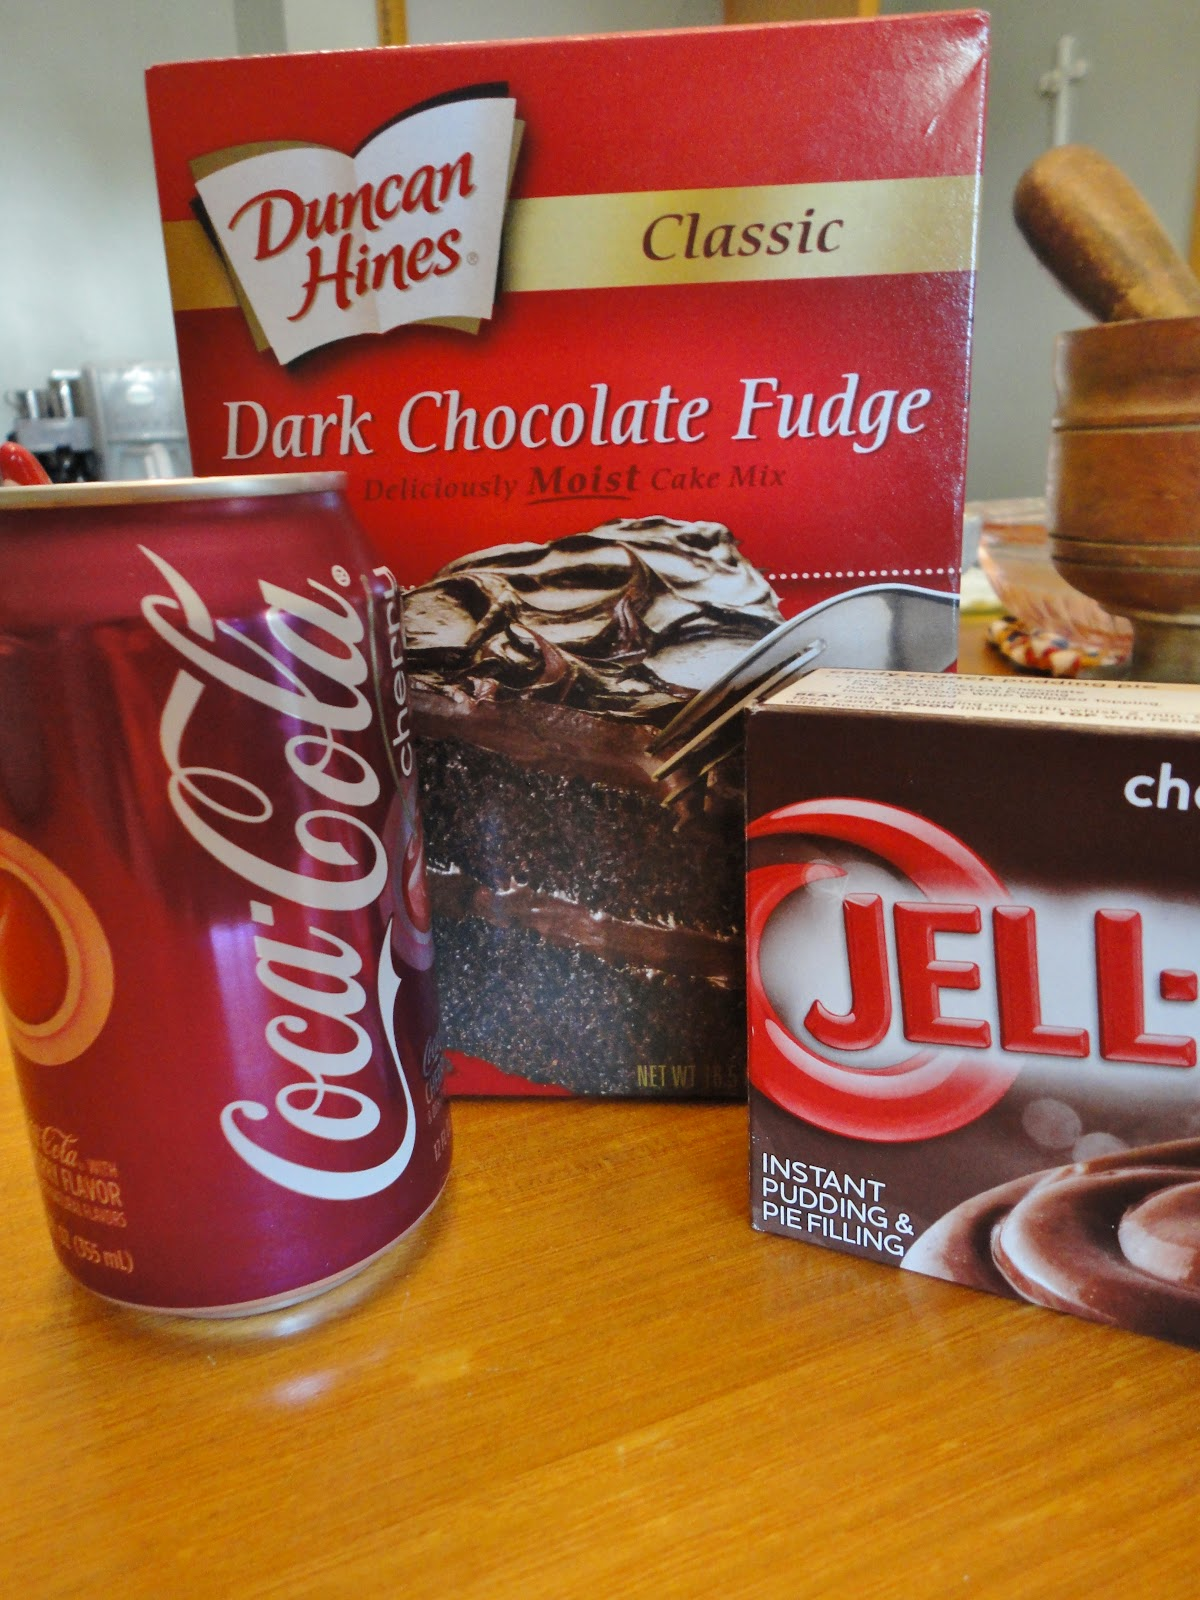 ... to combine a few of his favorites- fudgy chocolate and Cherry Coke